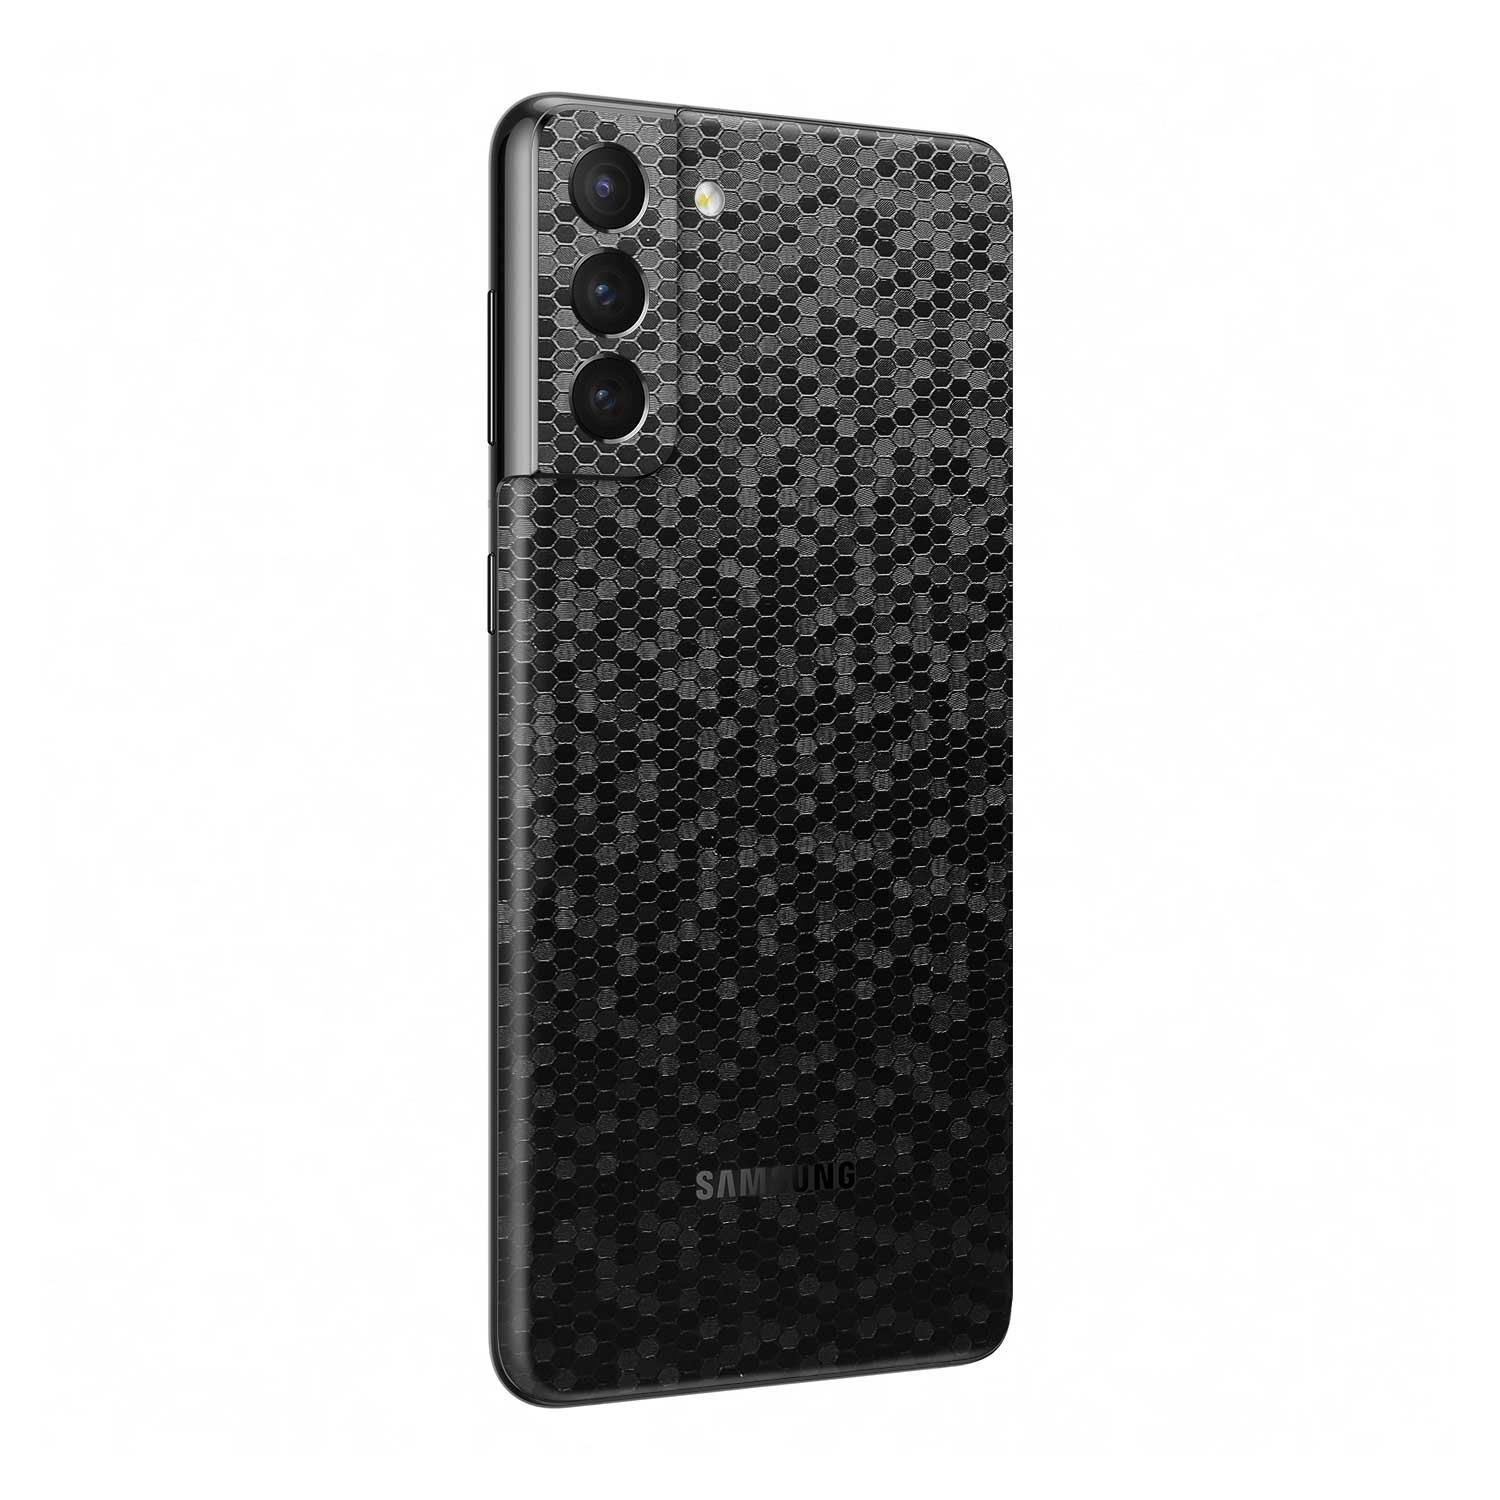 3D Textured Black Honeycomb Skin for Samsung Galaxy S21 Plus